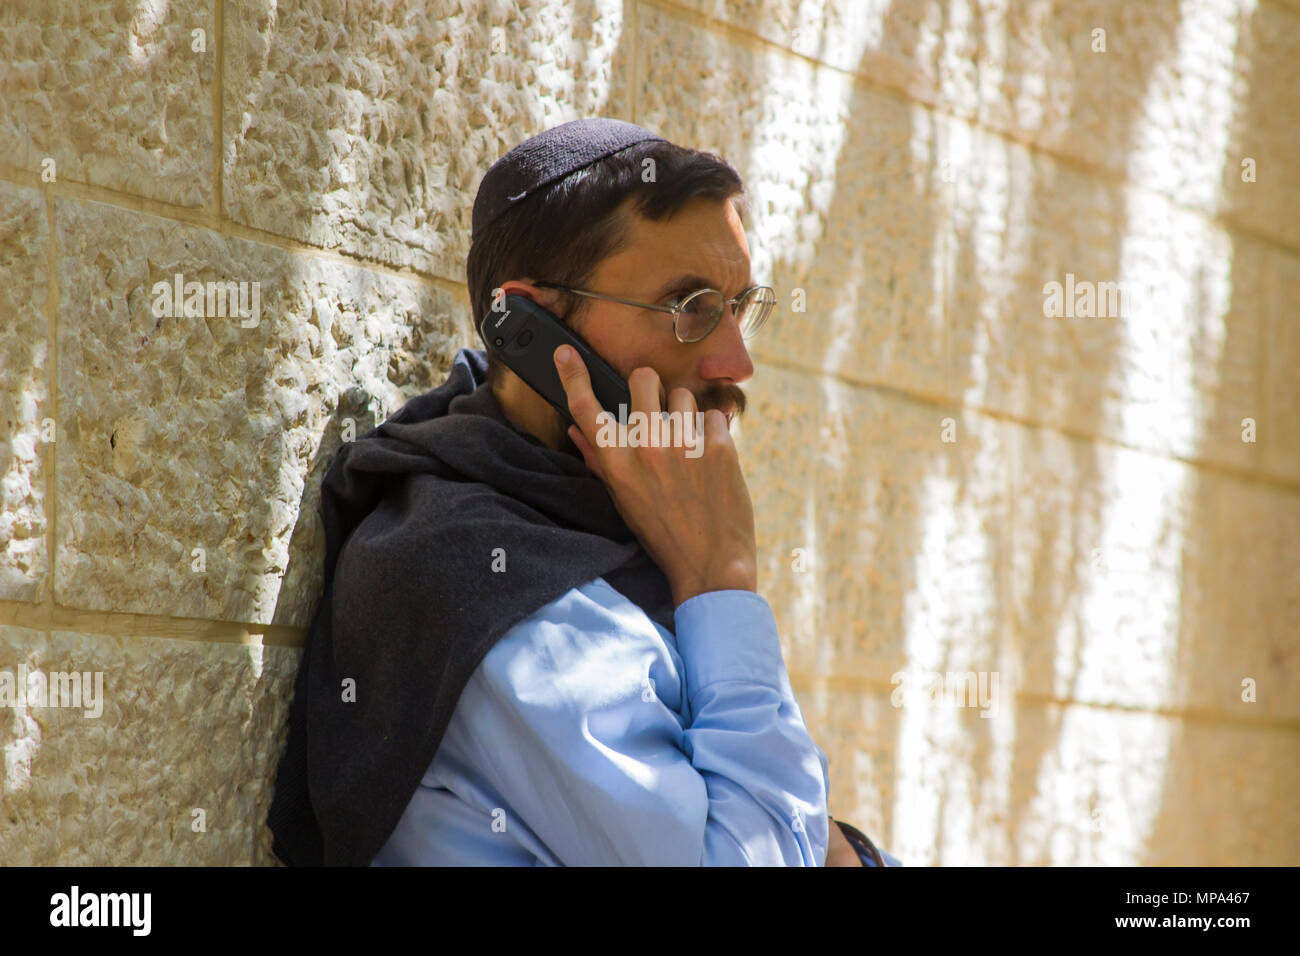 A young Jewish male with a moustache  using a mobile phone while leaning against a stone wall in Jerusalem Israel - Stock Image